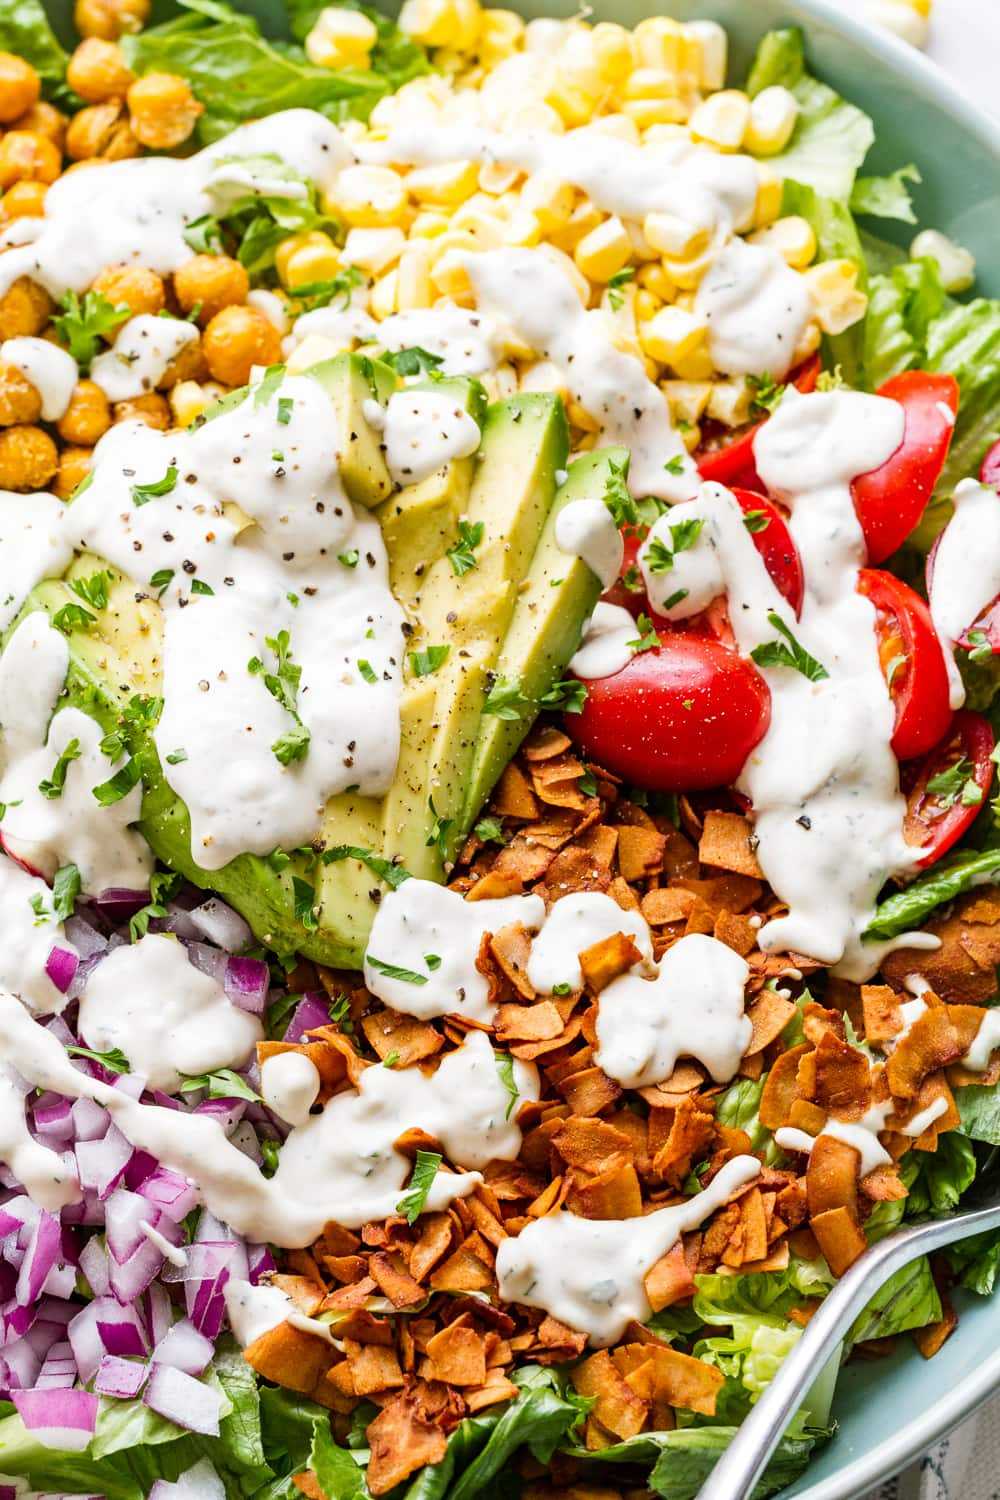 up close side angle view of vegan cobb salad with vegan ranch dressing.